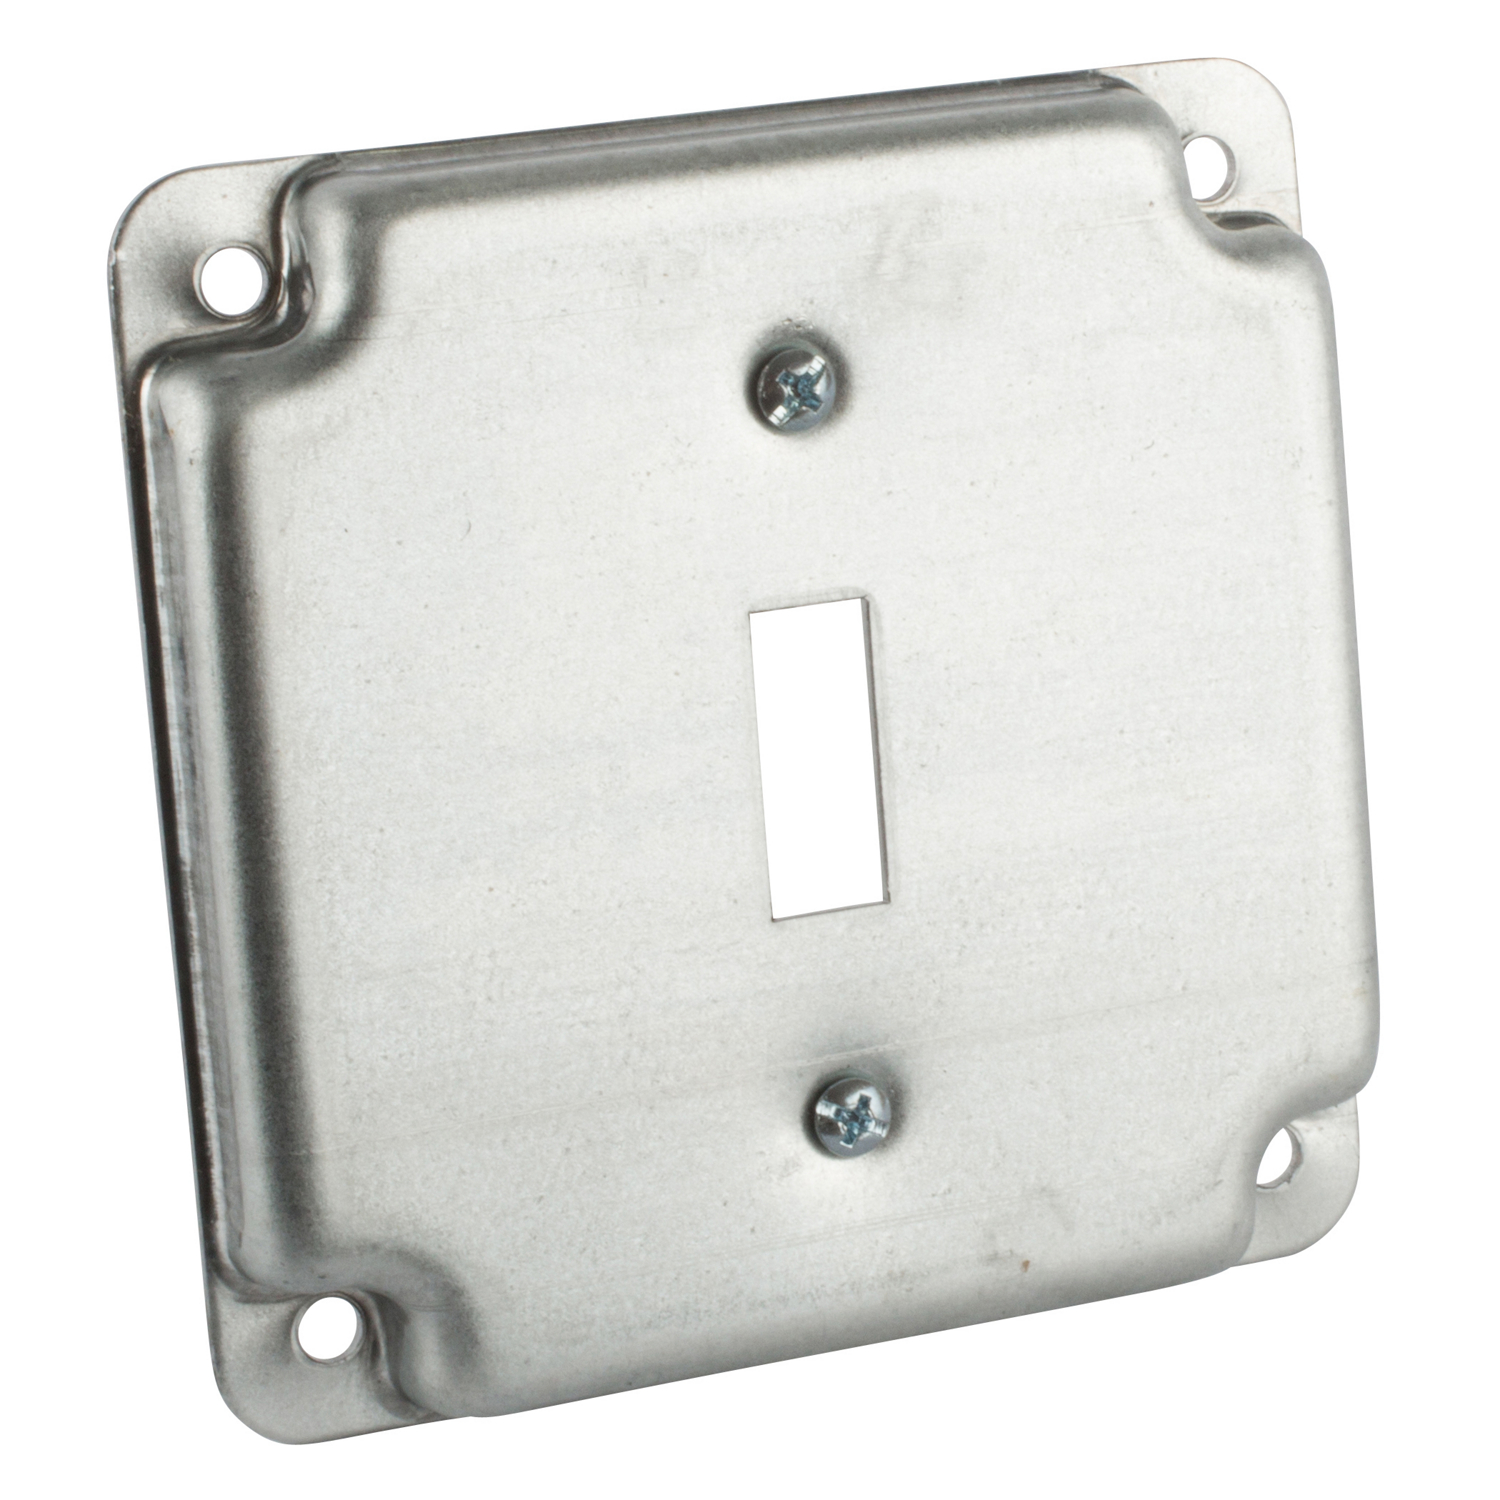 STEEL-CITY RS9 4-IN SQUARE SURFACE COVER 5CU 1-TOGGLE, 1/2IN DEEP